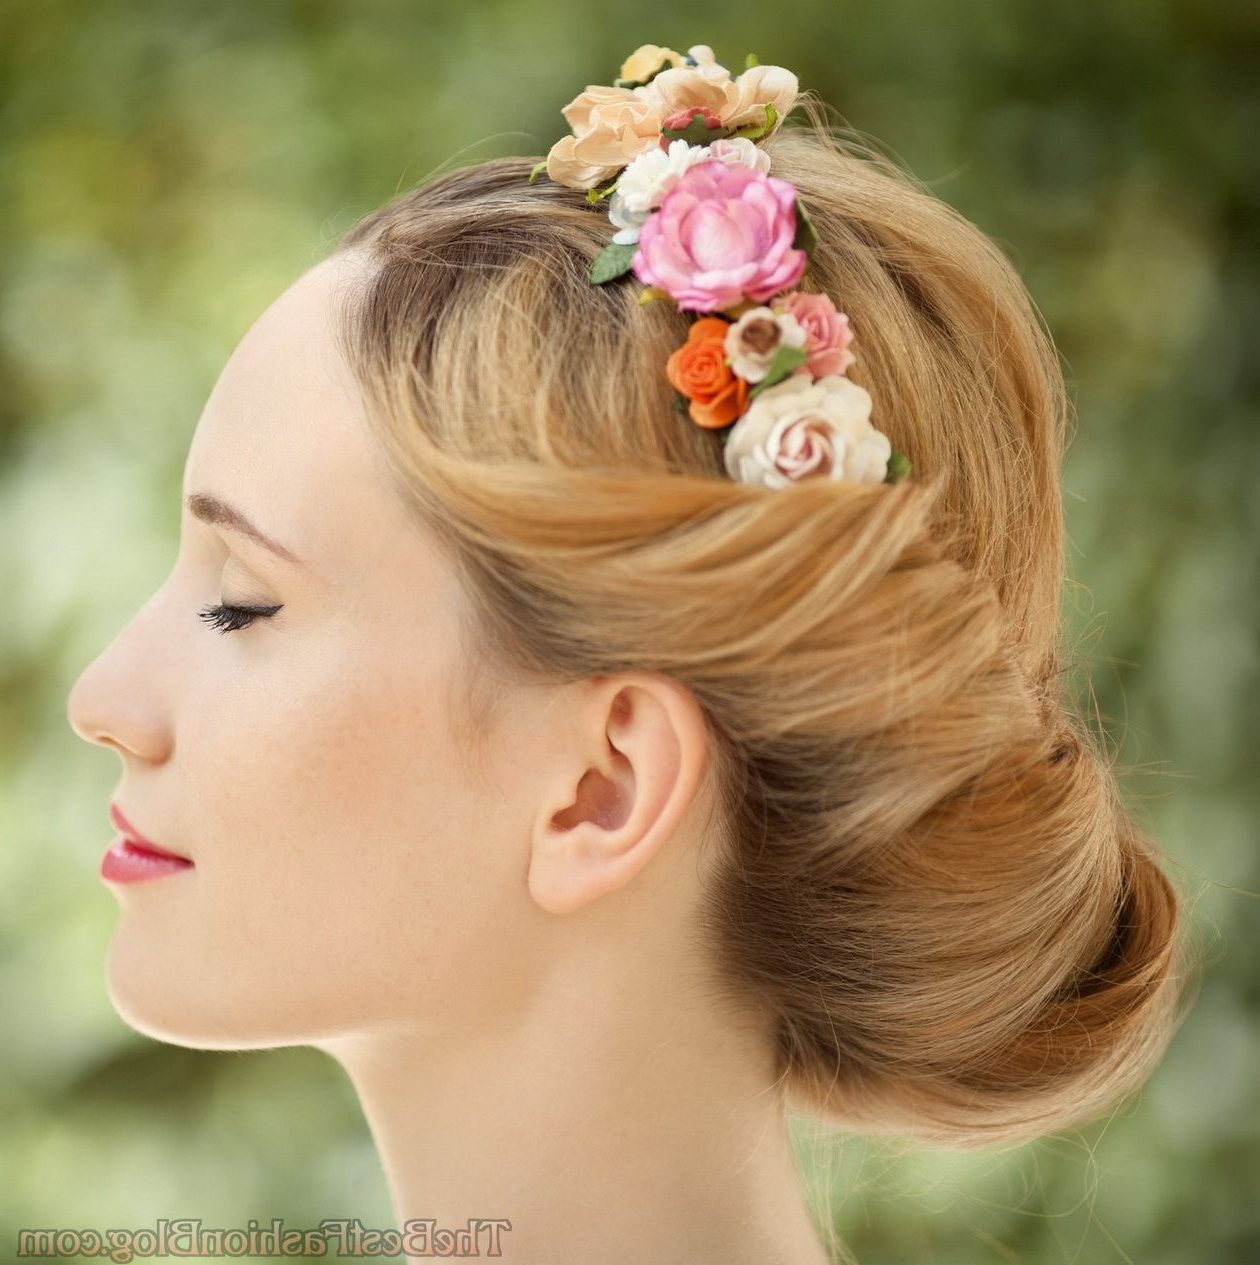 Hippie Hairstyles – 27 Cute Hairstyles For Hippie Girls Intended For Hippie Short Hairstyles (View 2 of 25)